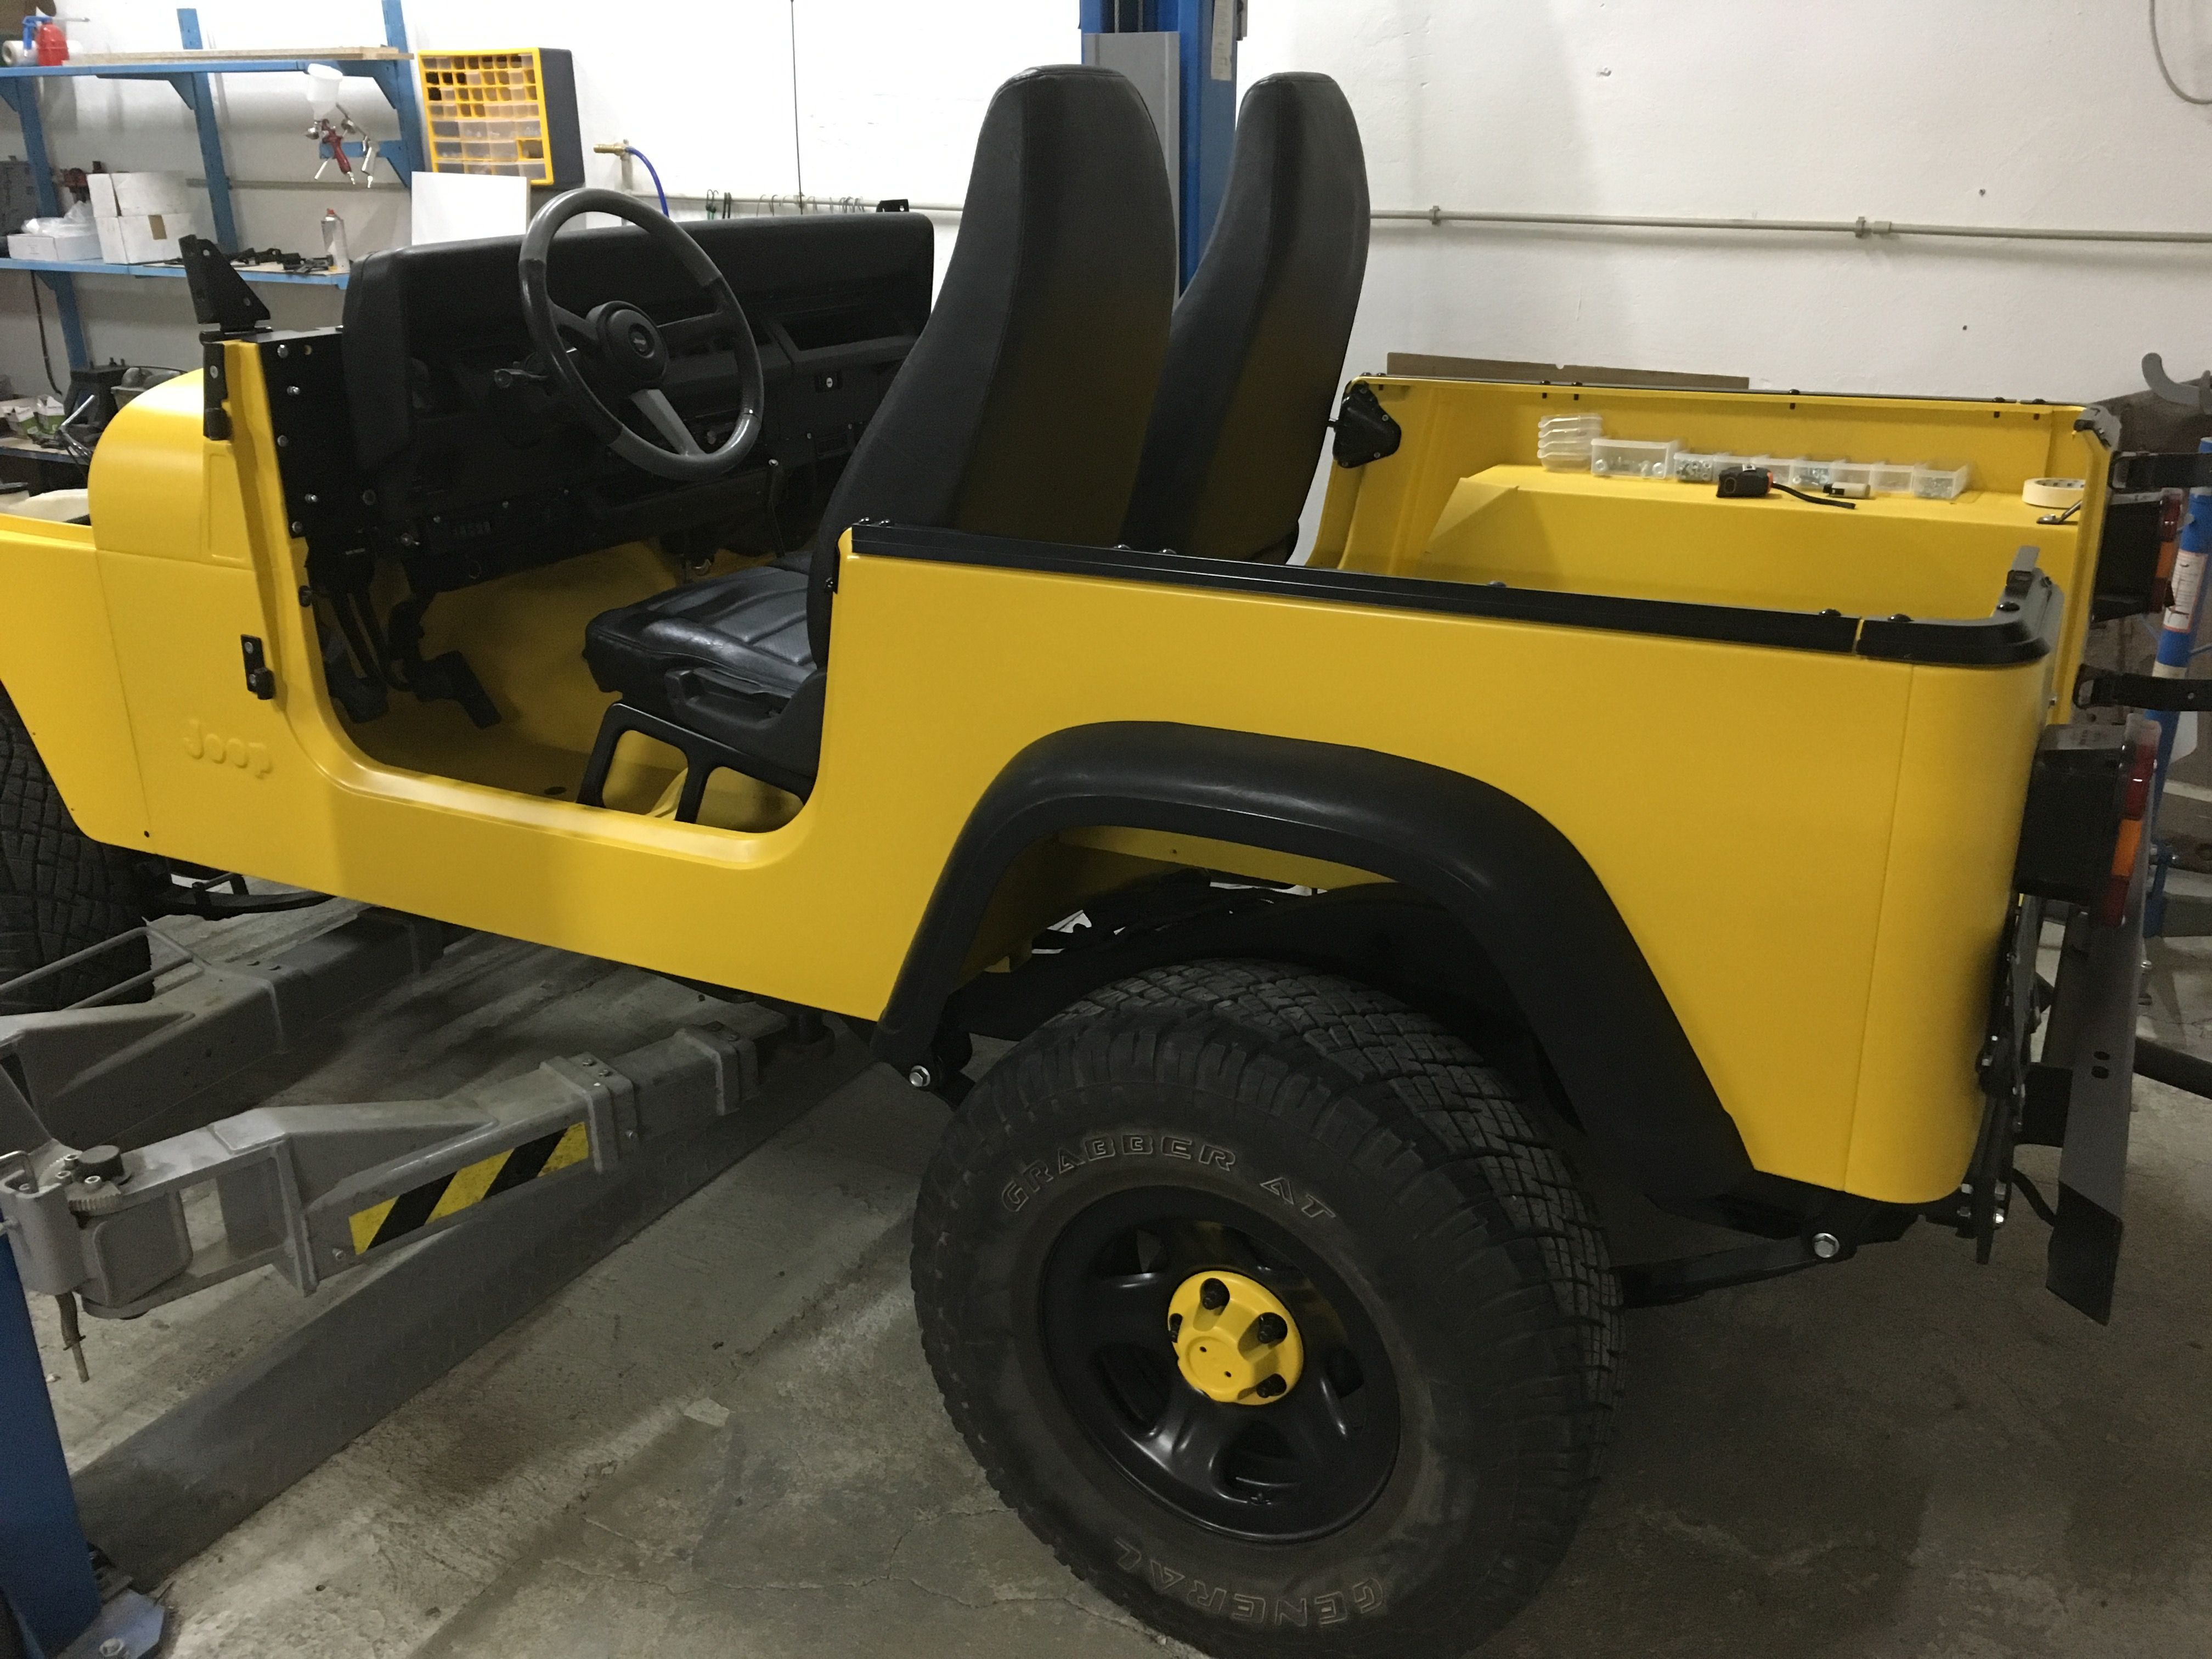 Pin by MAXPerformance, s.r.o. on 2017/01 Jeep Wrangler YJ